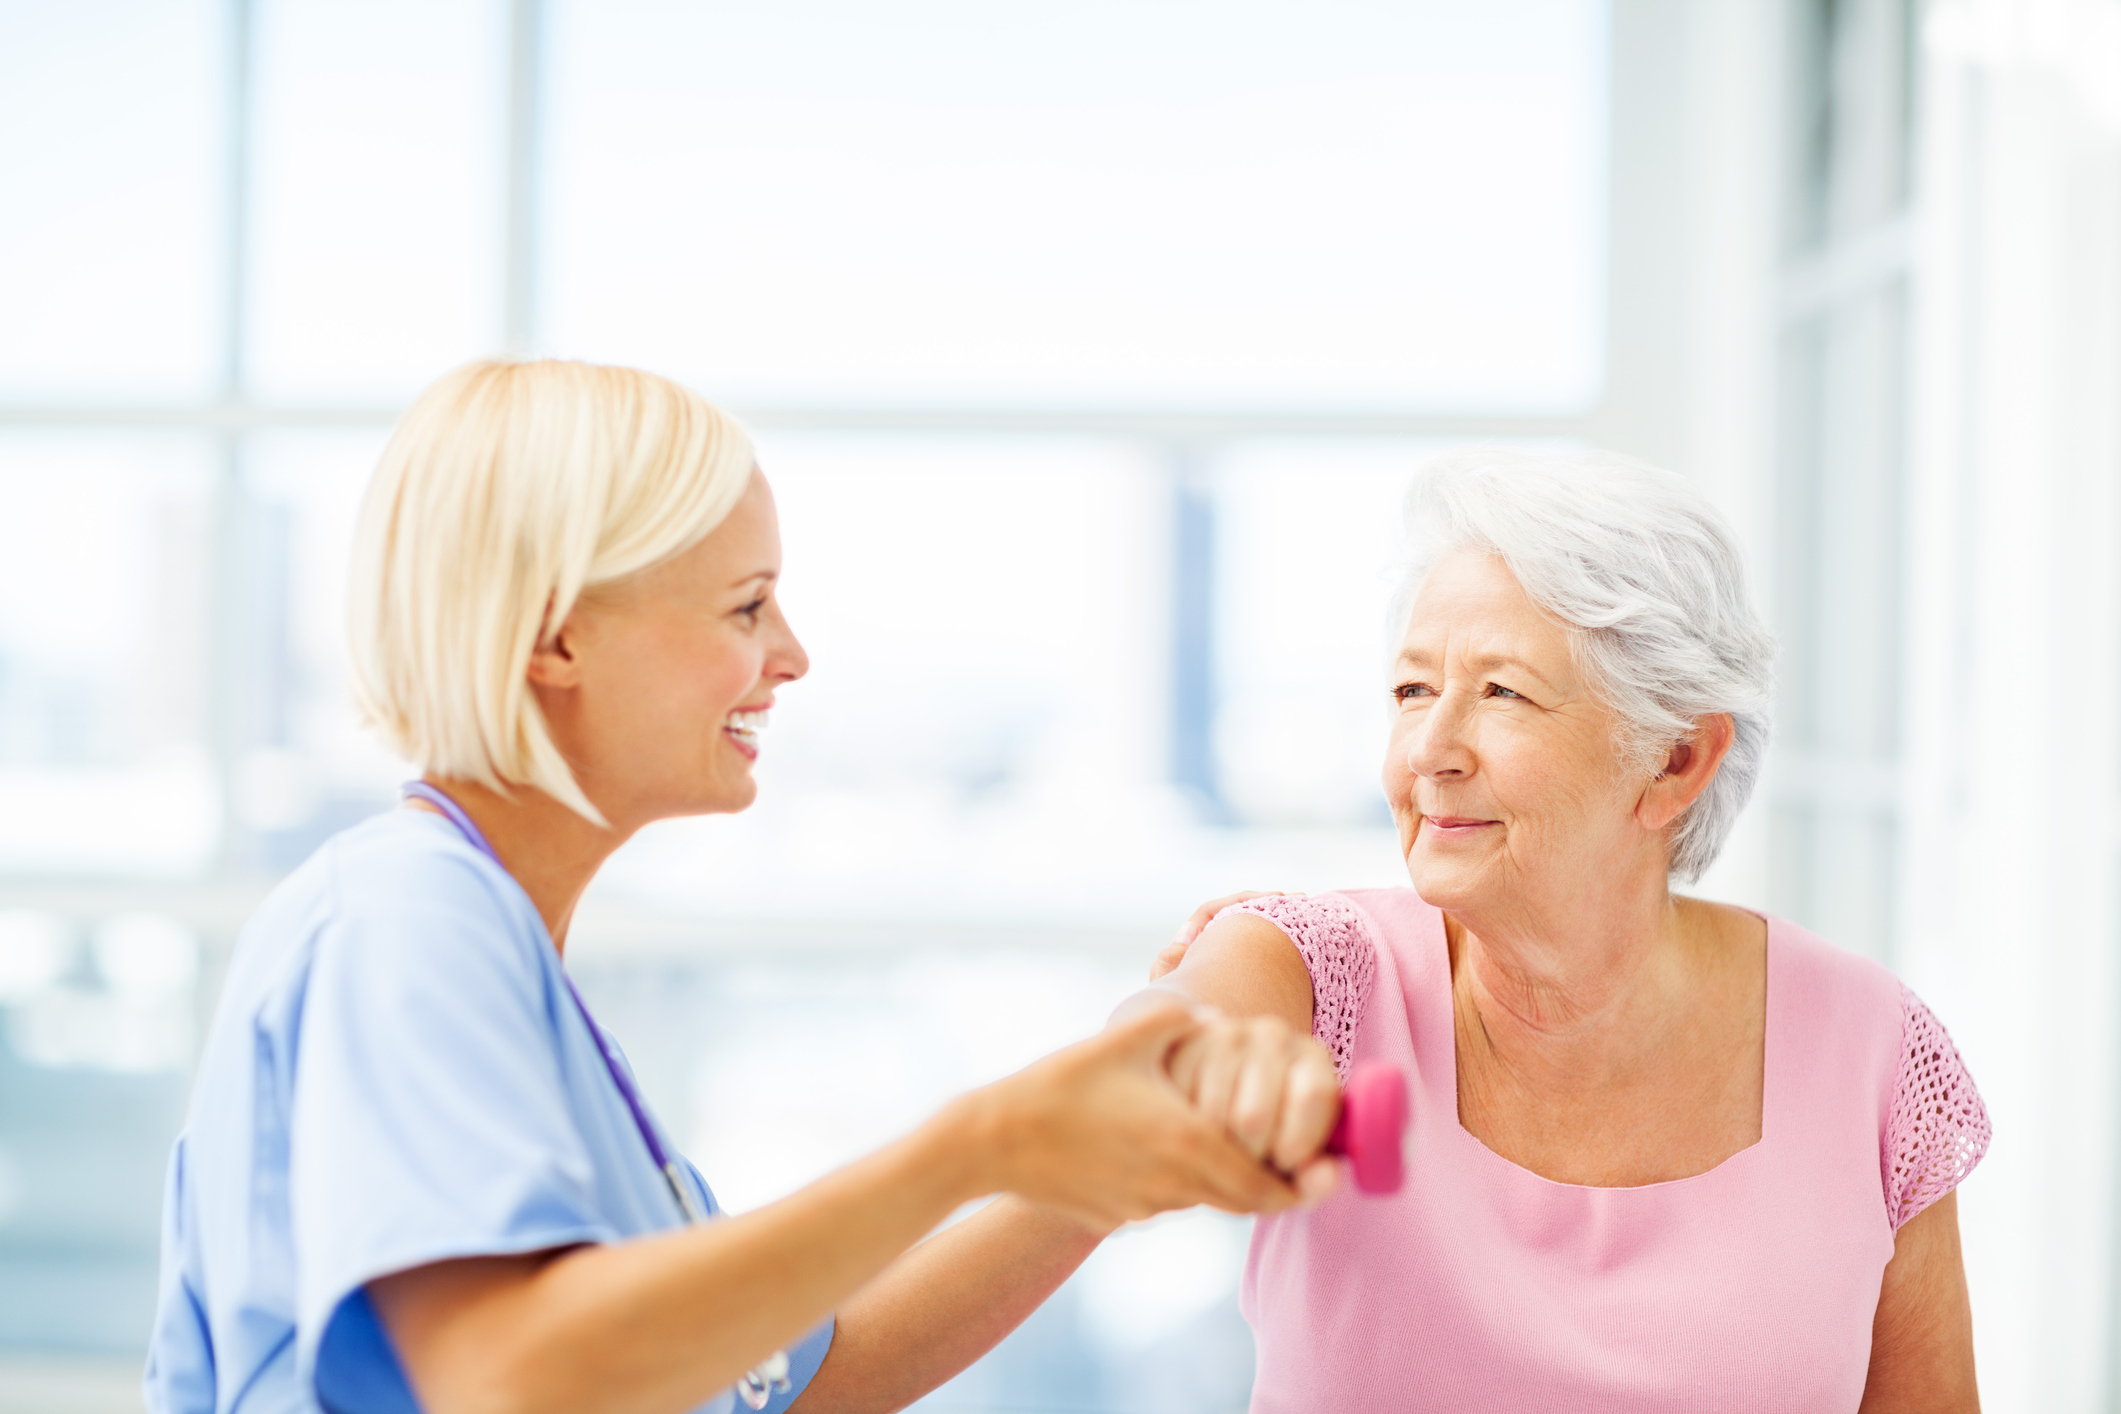 We'll Get You Home - Specialized long and short-term care performed by a highly trained and compassionate staff with your health and comfort as their number one priorities.